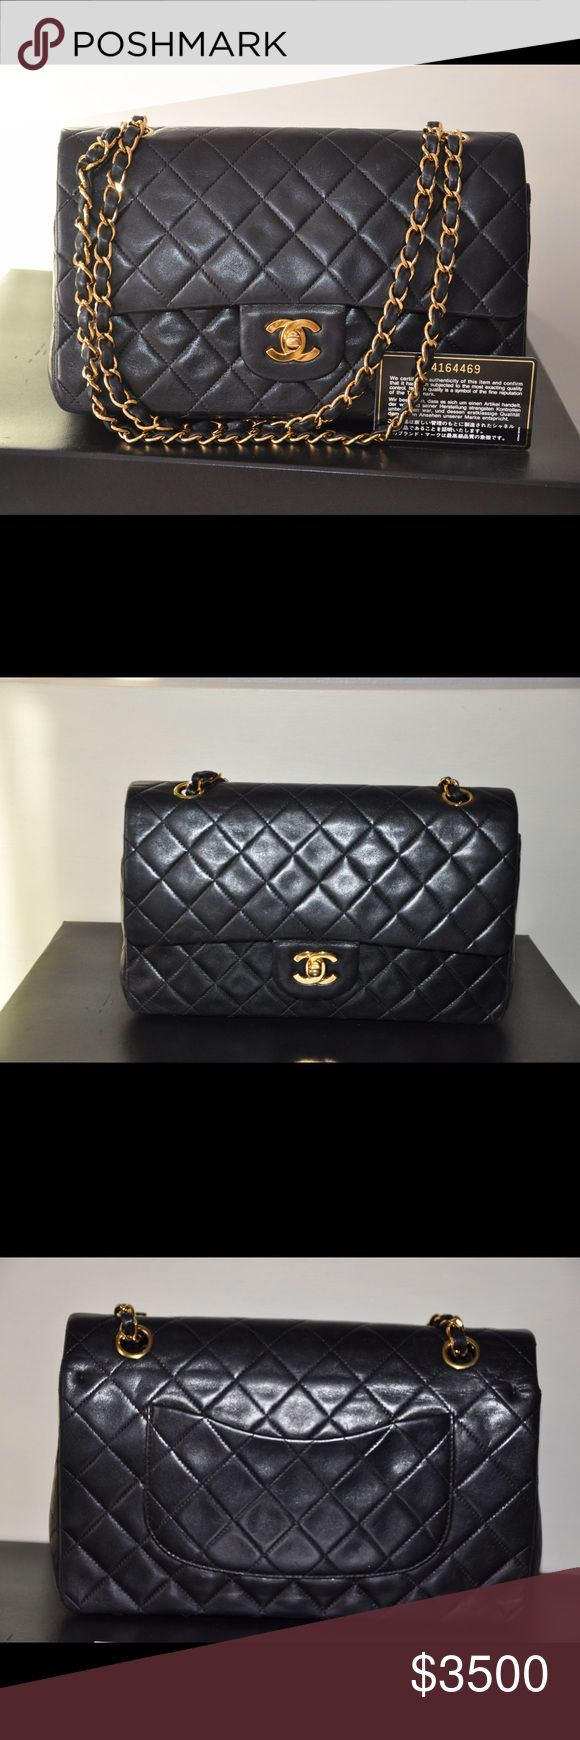 Chanel medium bag Chanel medium double flap bag in lambskin and gold hardware . Comes with card, dust bag and box. Cheaper if meet up NYC . CHANEL Bags Shoulder Bags